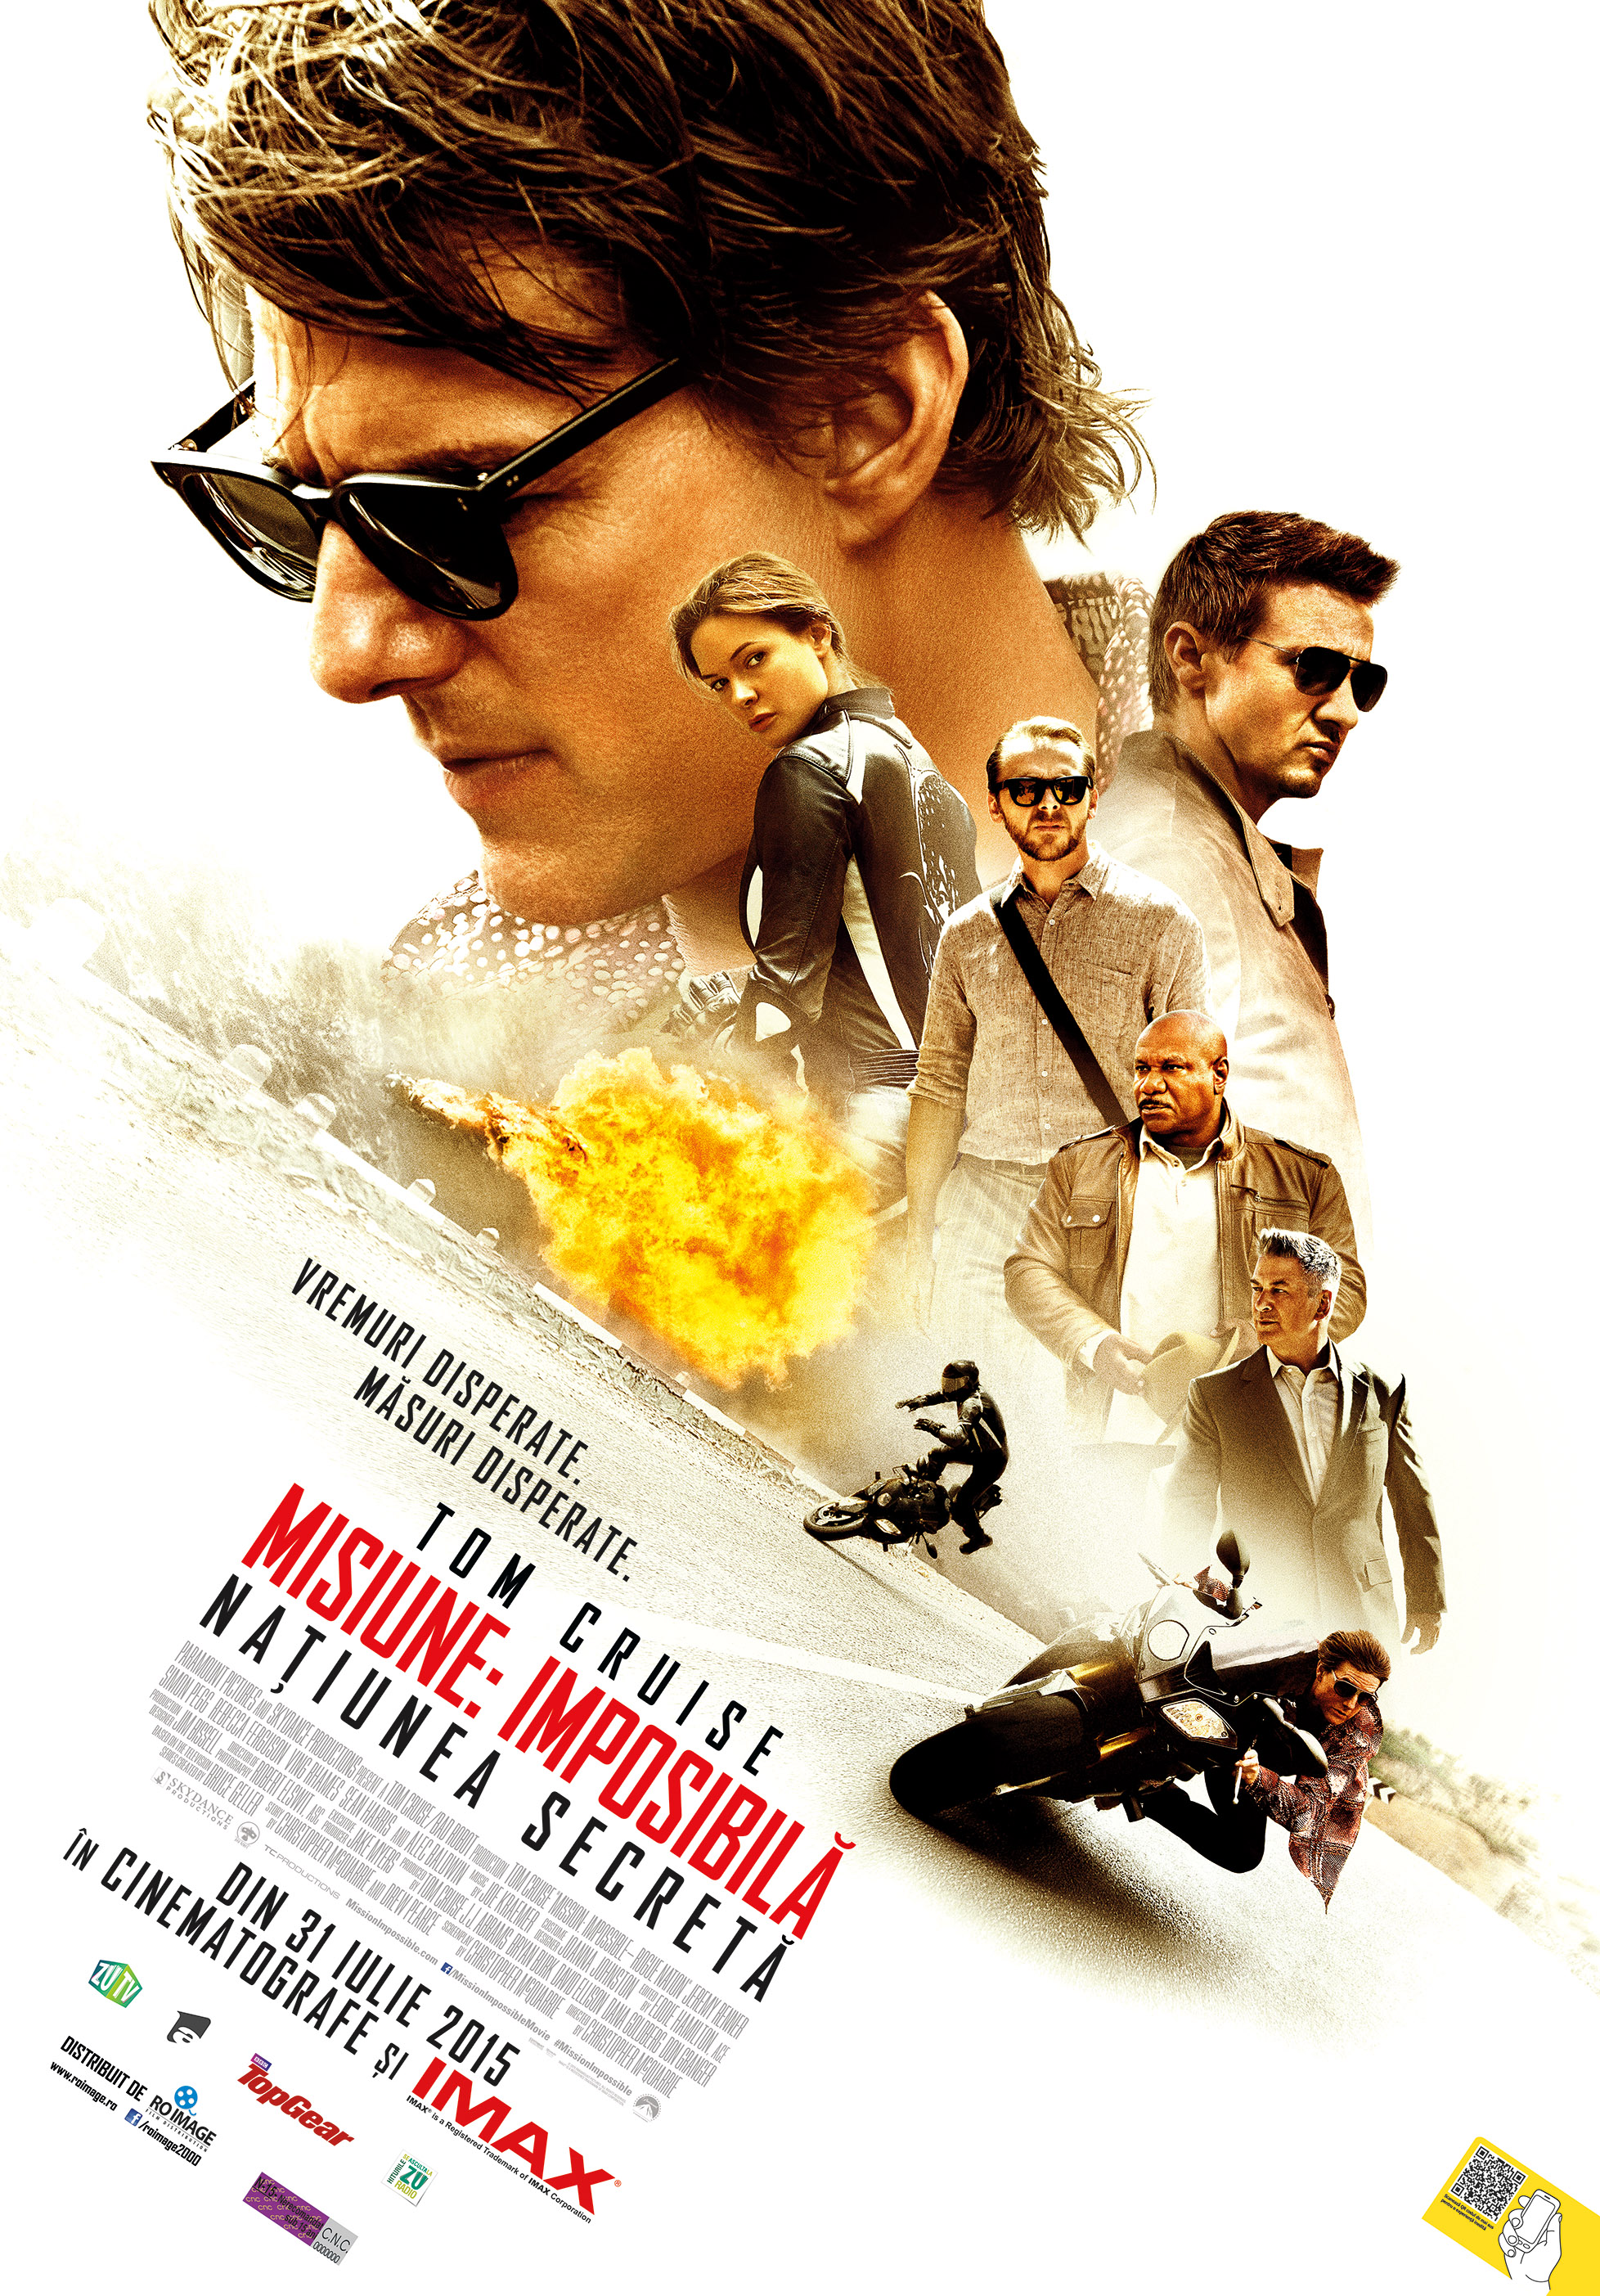 Mission: Impossible - Rogue Nation (2015) Misiune: Imposibilă. Naţiunea secretă Mission-impossible-rogue-nation-425346l